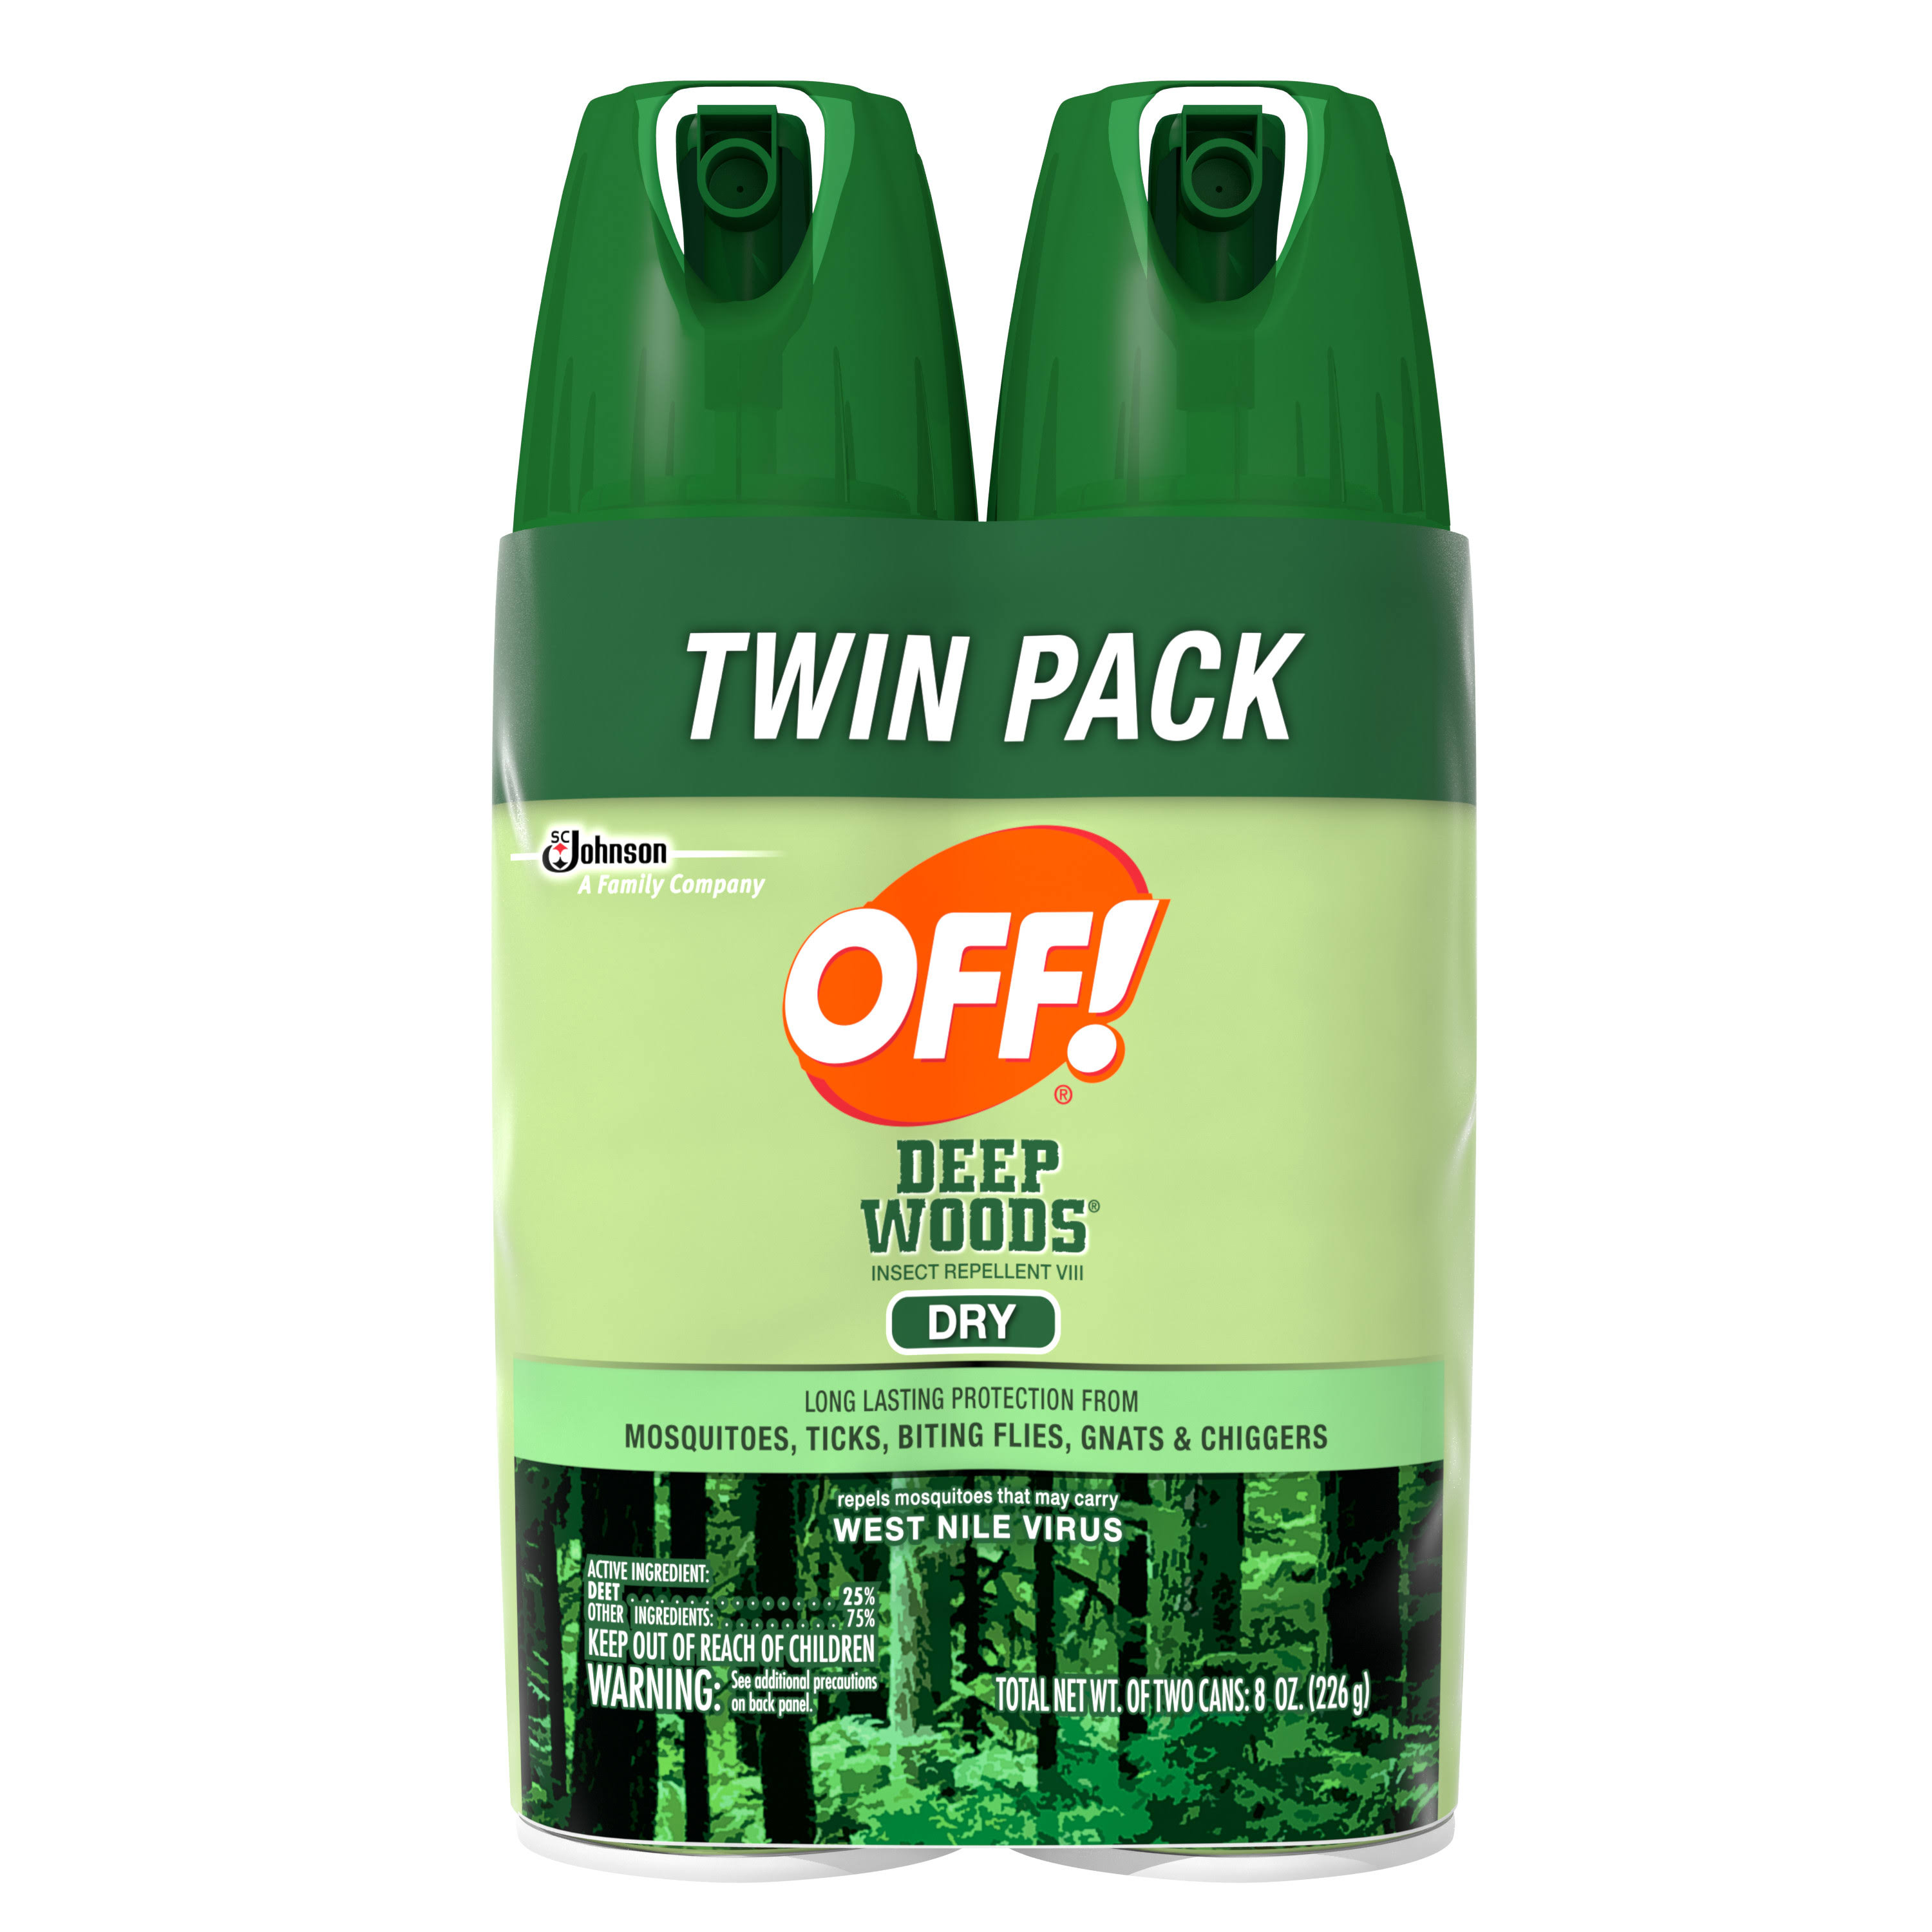 Off Deep Woods Insect Repellent - Dry, 4oz, 2ct